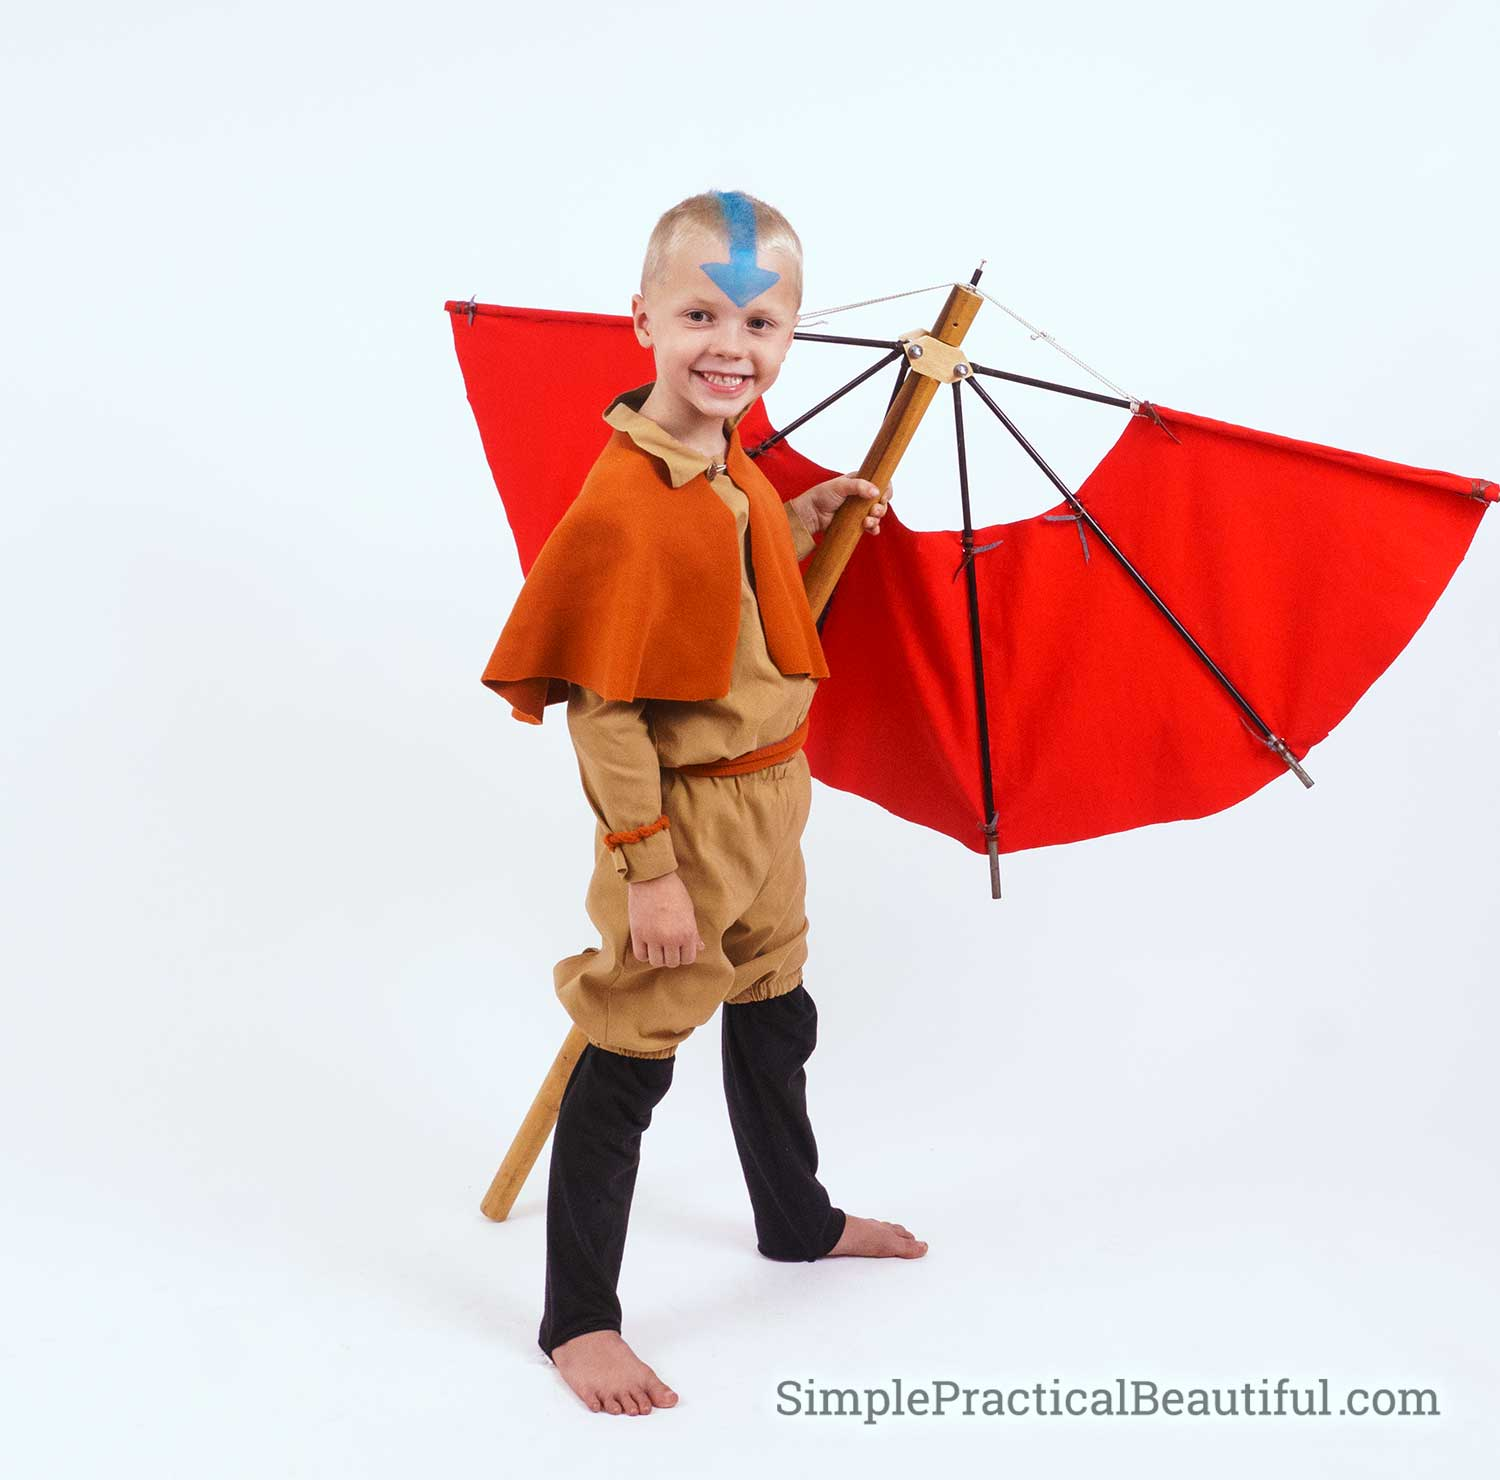 Aang costume with a DIY Airbender staff